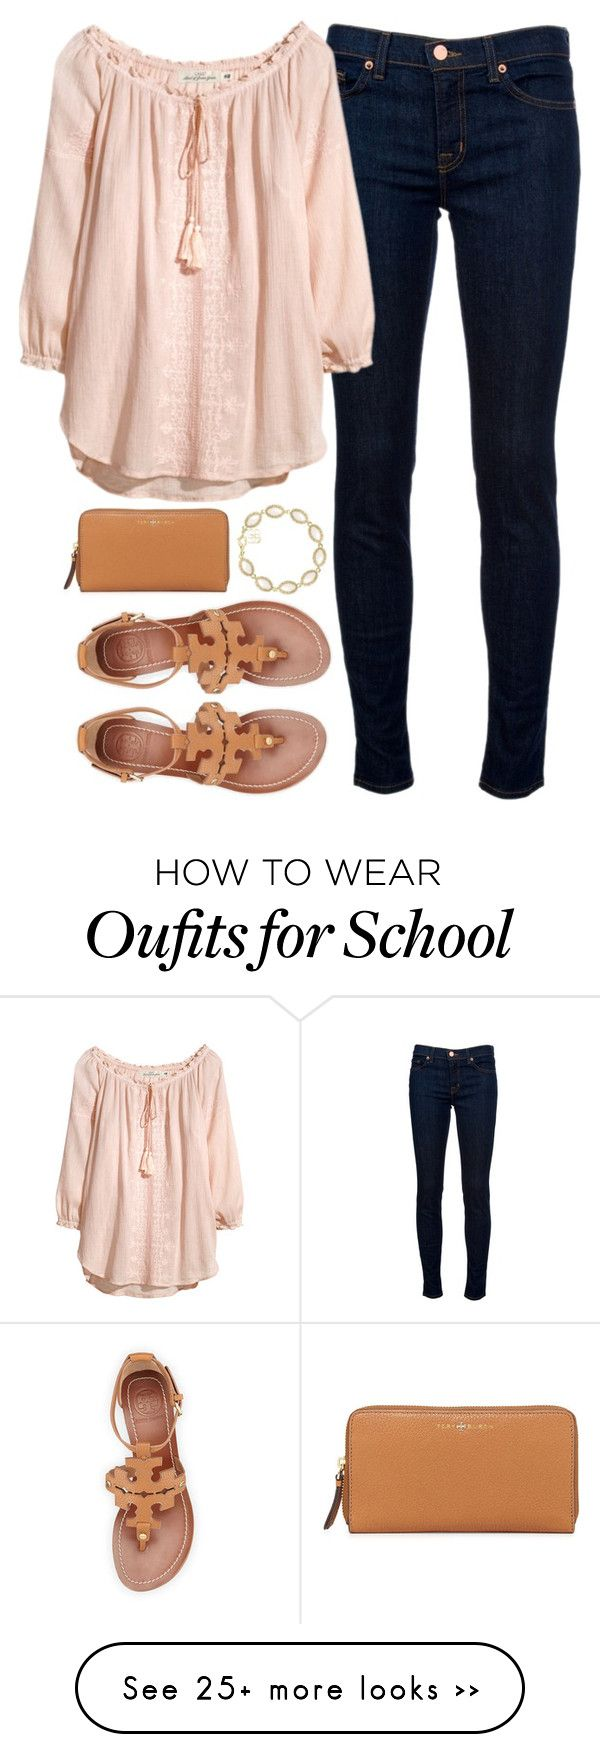 """sandals to school"" by tabooty on Polyvore featuring J Brand, Tory Burch and Kendra Scott"